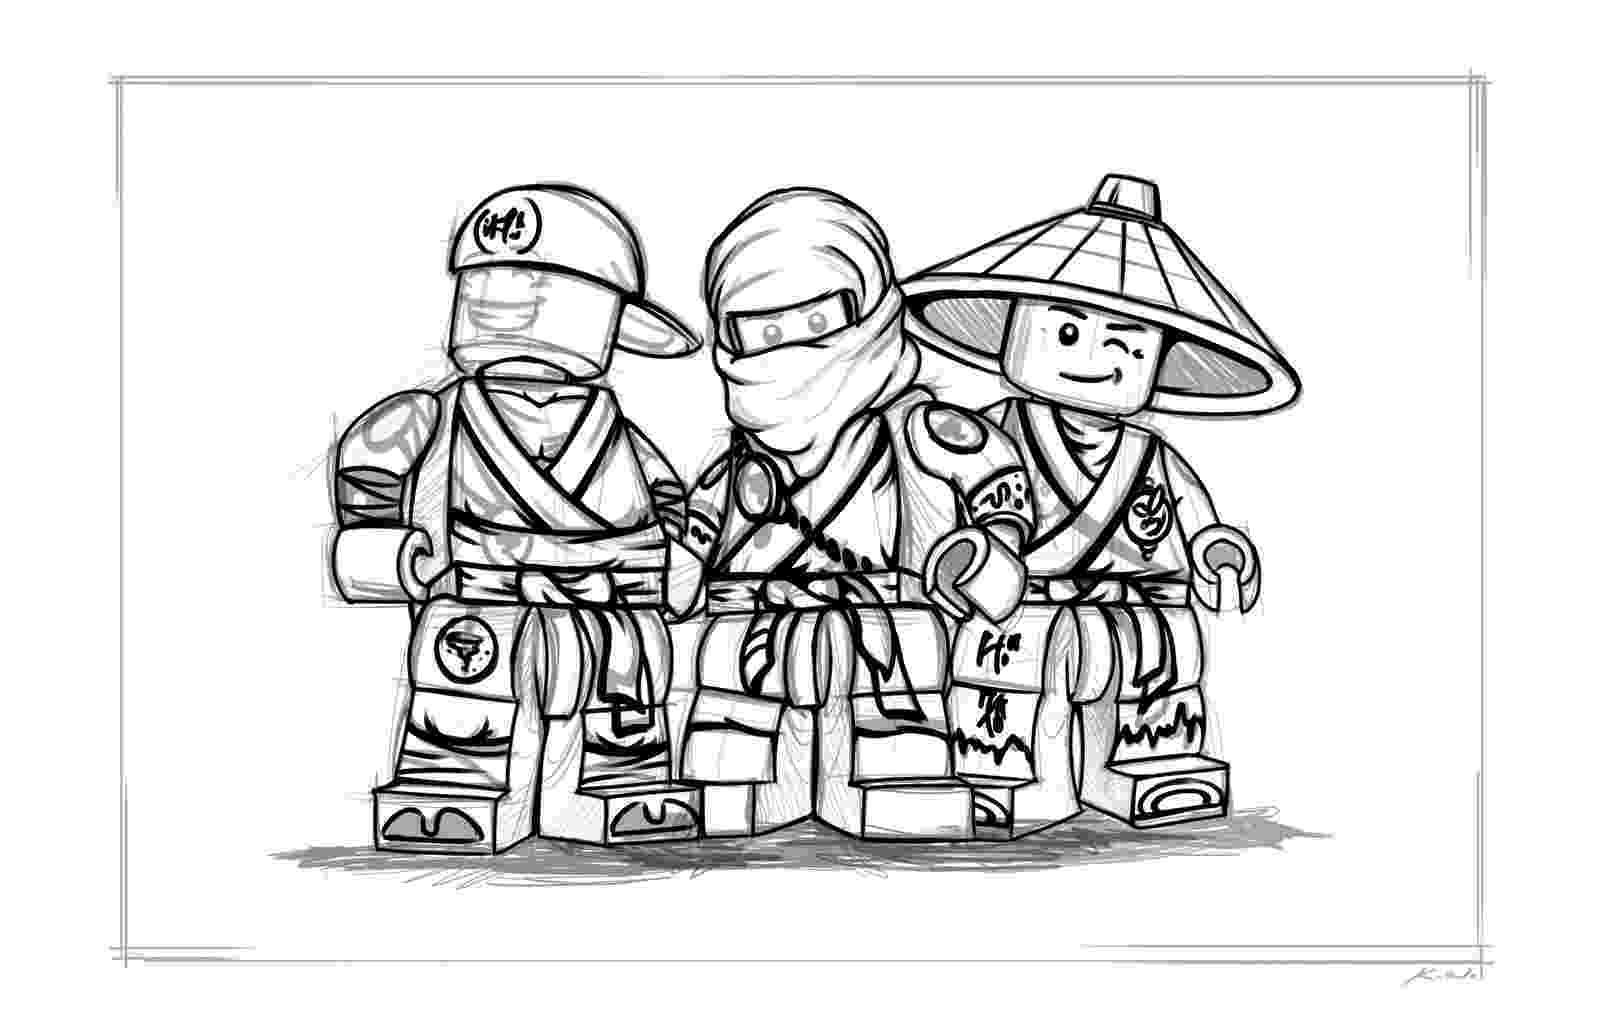 lego pages to color lego ninjago coloring pages free printable pictures pages lego to color